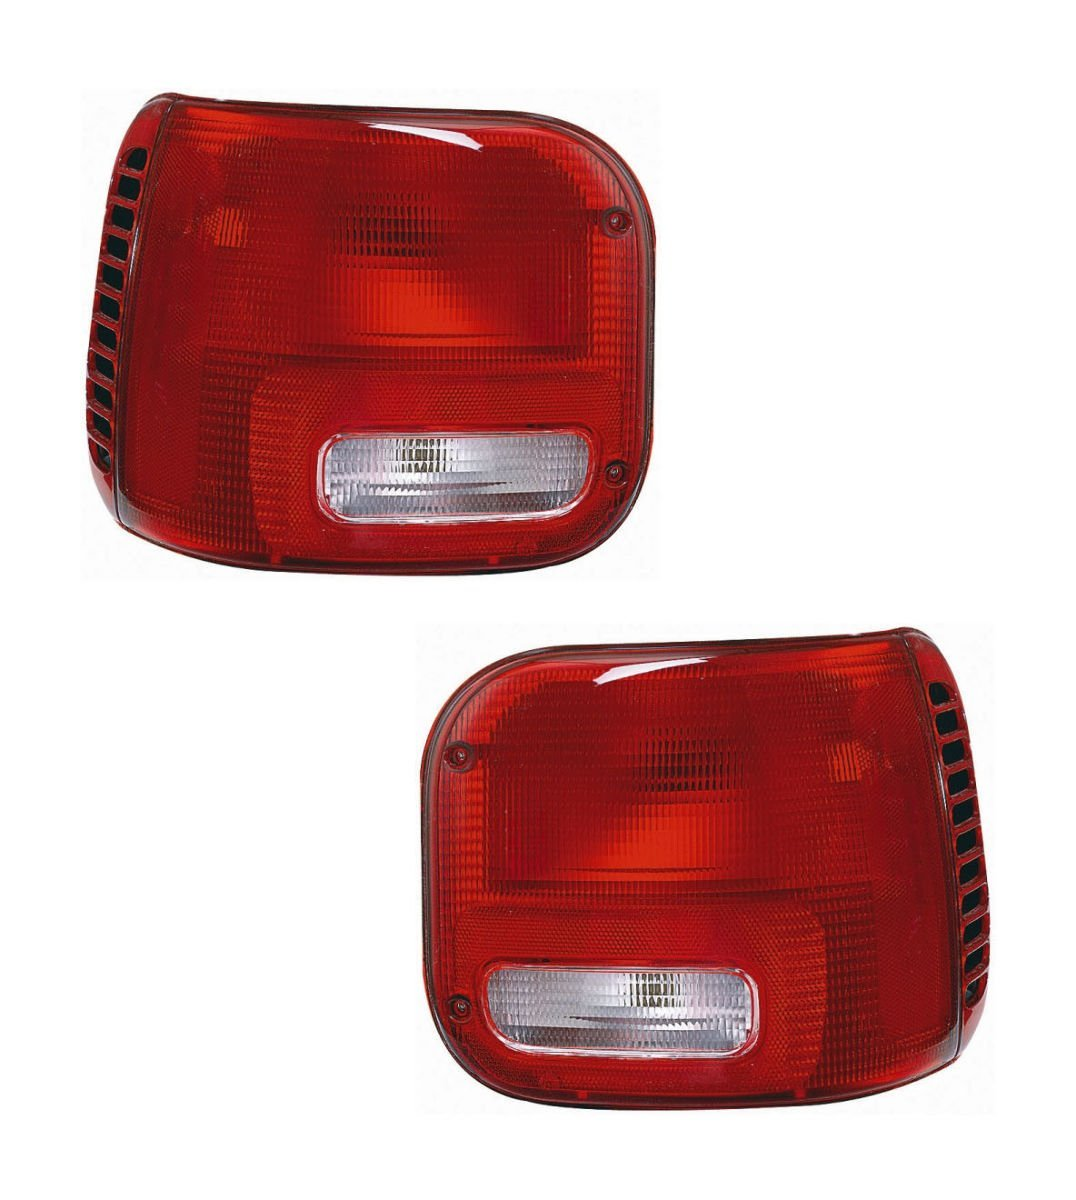 1994 2003 Dodge Full Size Ram Van 1500 2500 3500 94 01 Tail Light Wiring Diagram Taillight Taillamp Rear Brake Lamp Set Pair Right Passenger And Left Driver Side